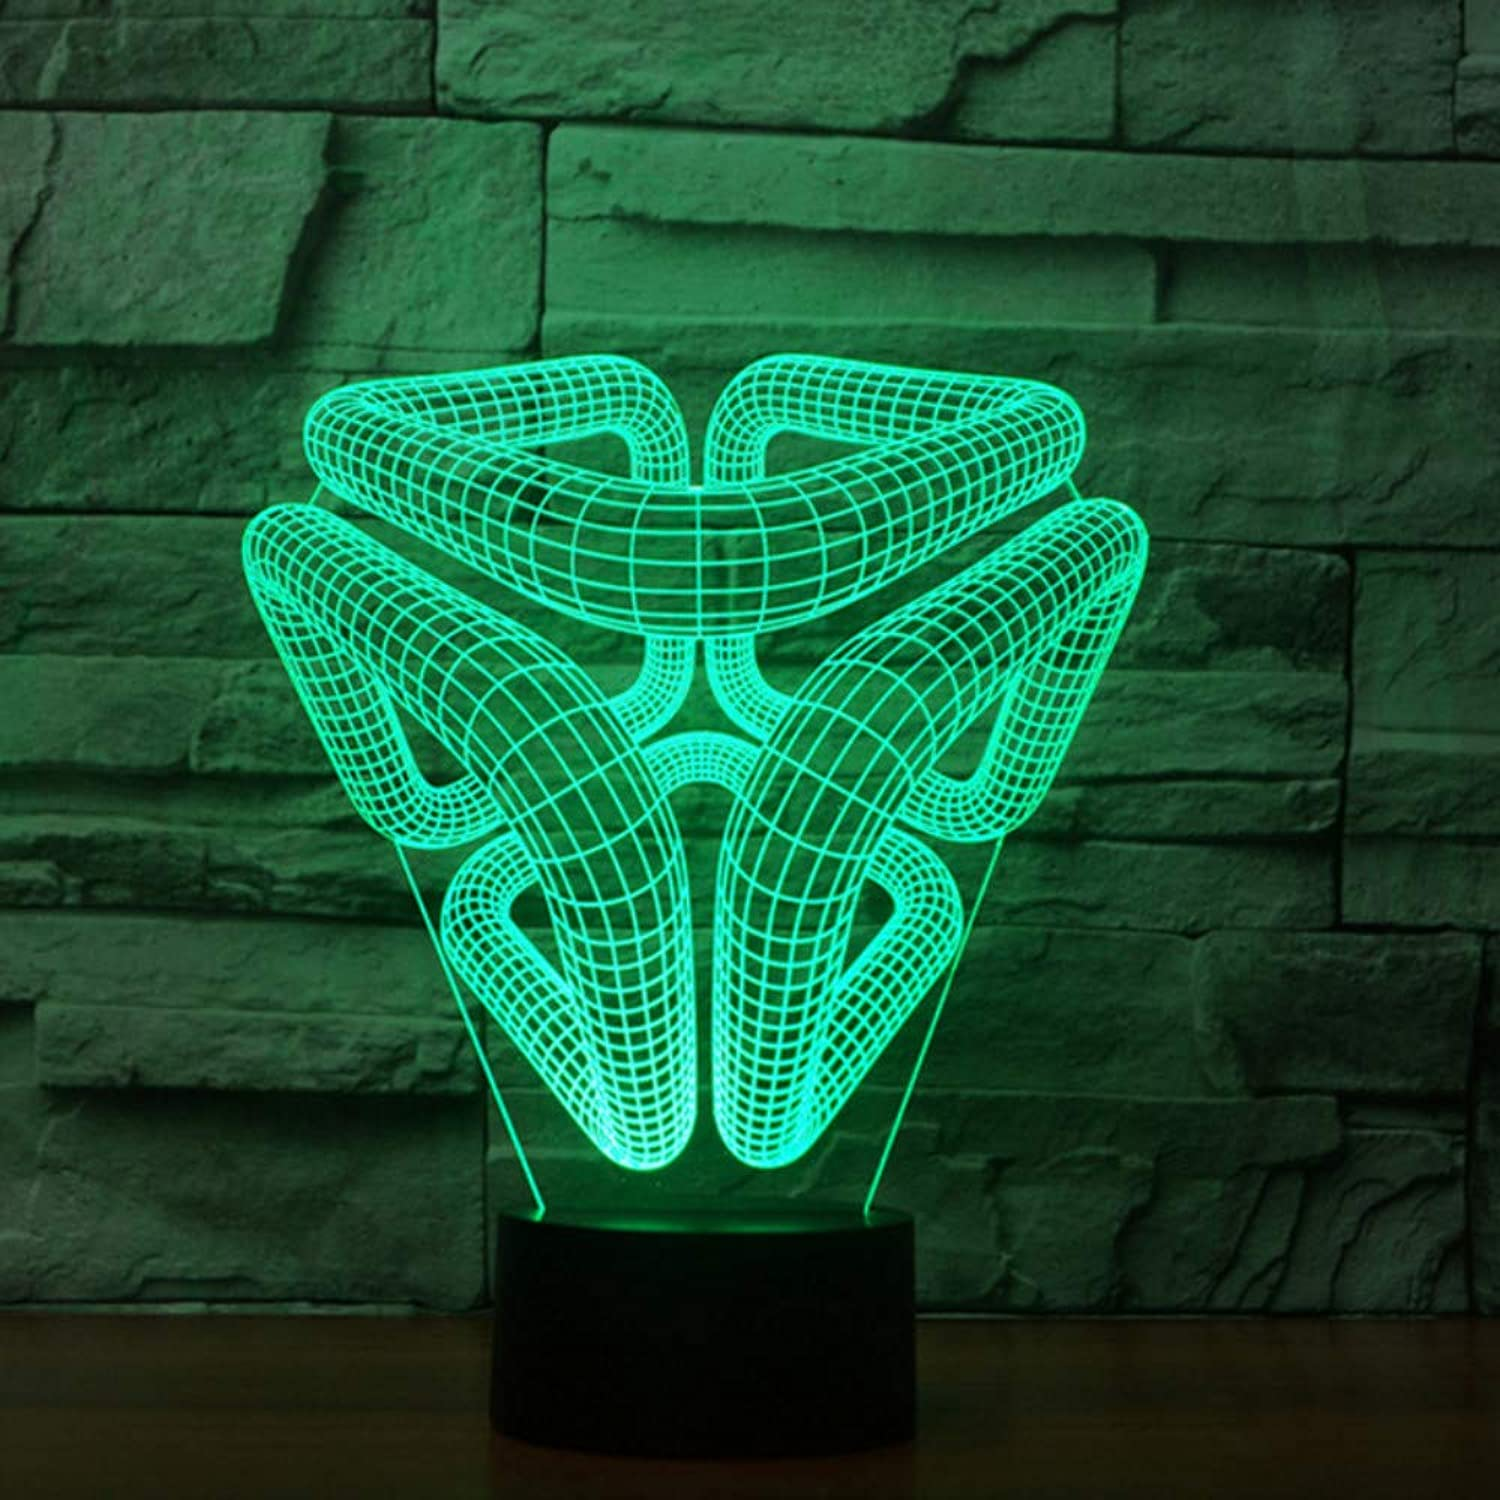 Zonxn 7 color Changing Modern Design Nightlight Led Abstract Image 3D USB Novelty Illusion Luminarys Desk Lamp Kid Home Bedside Decor